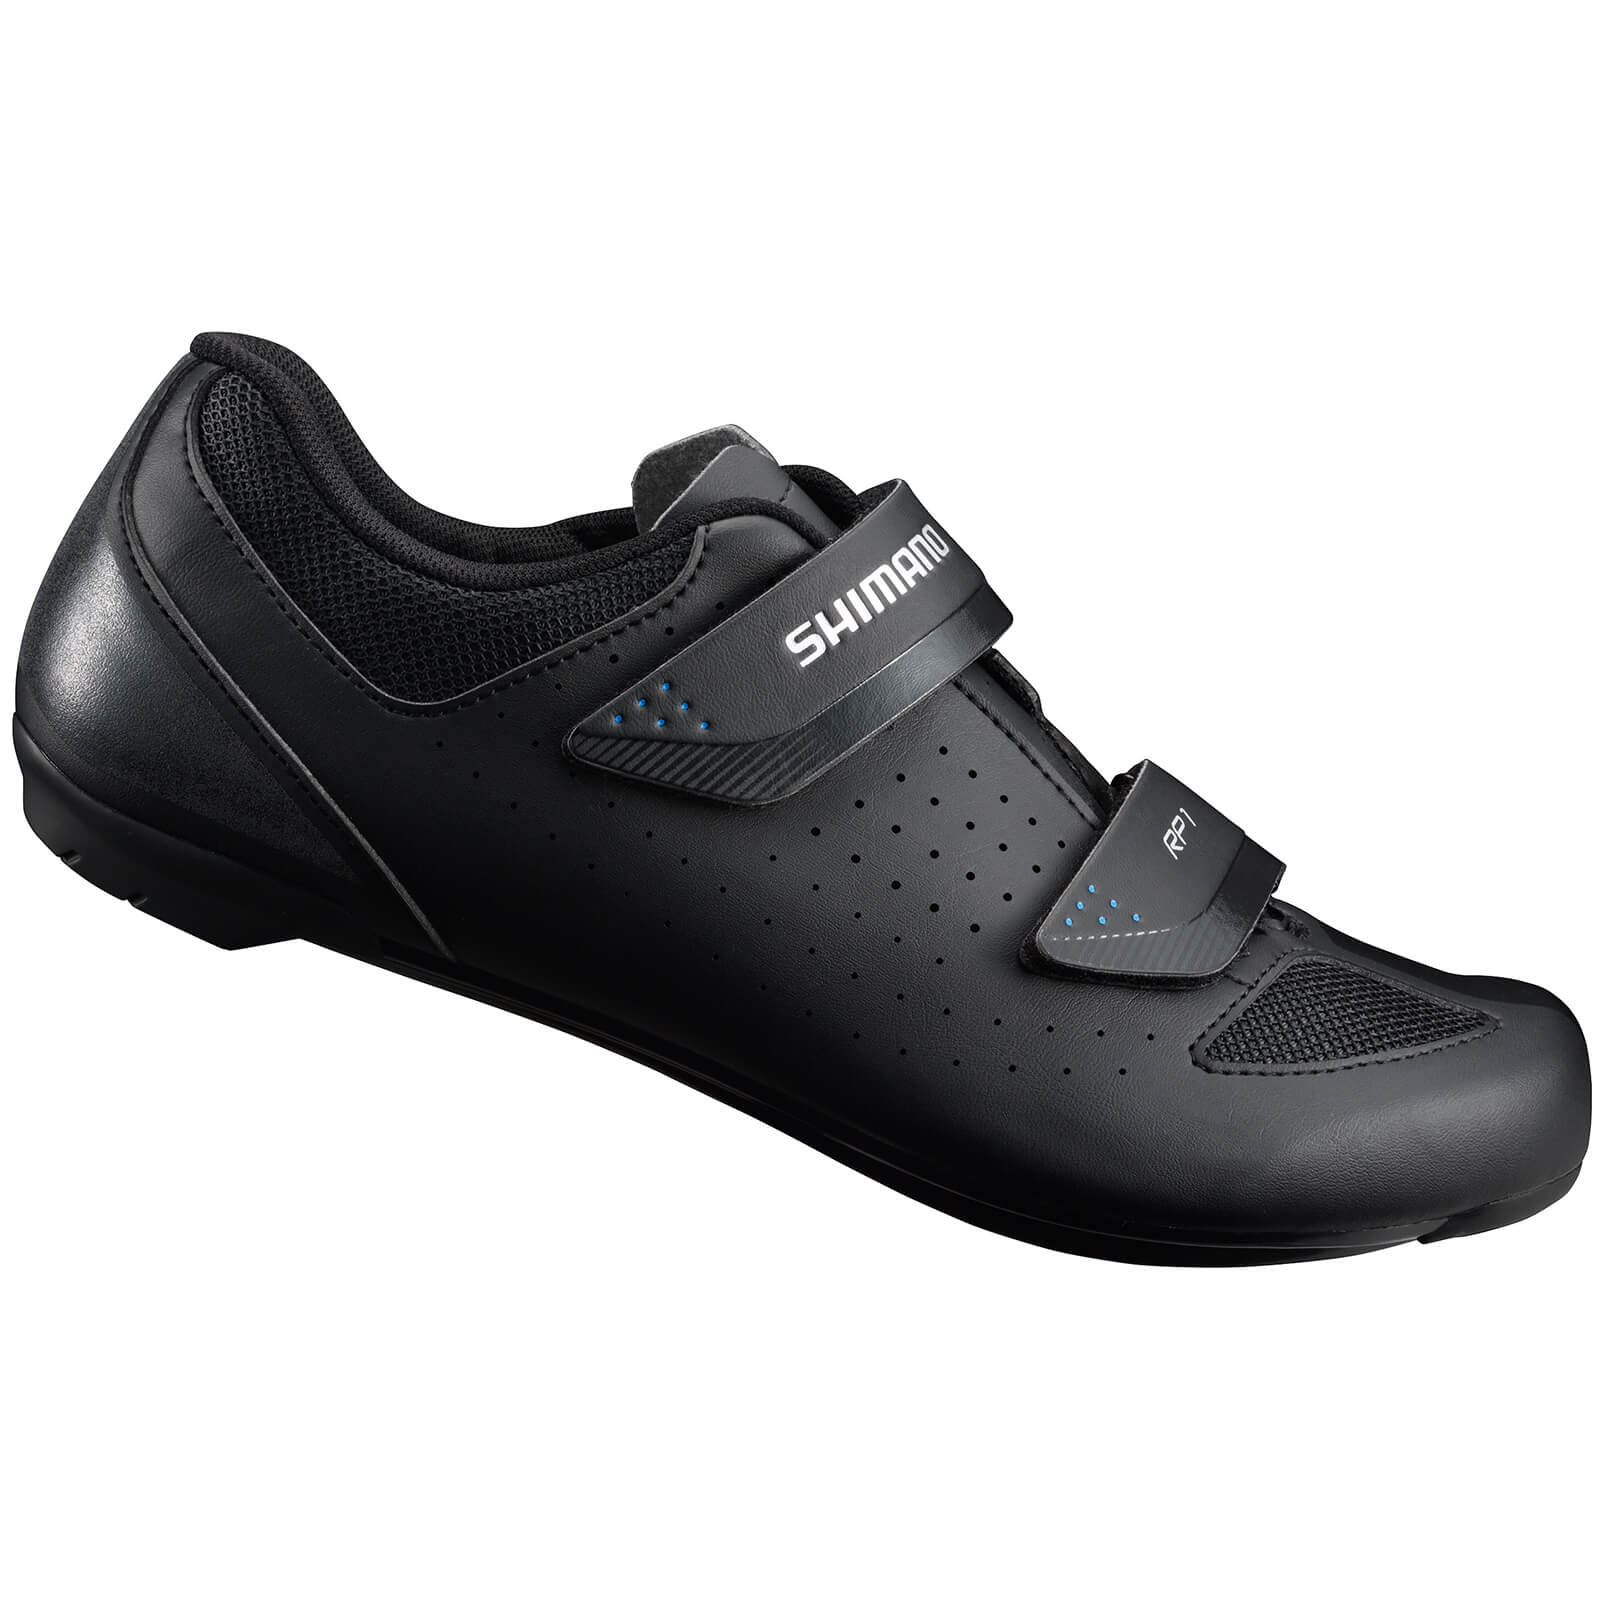 Shimano RP1 Road Shoes - Black